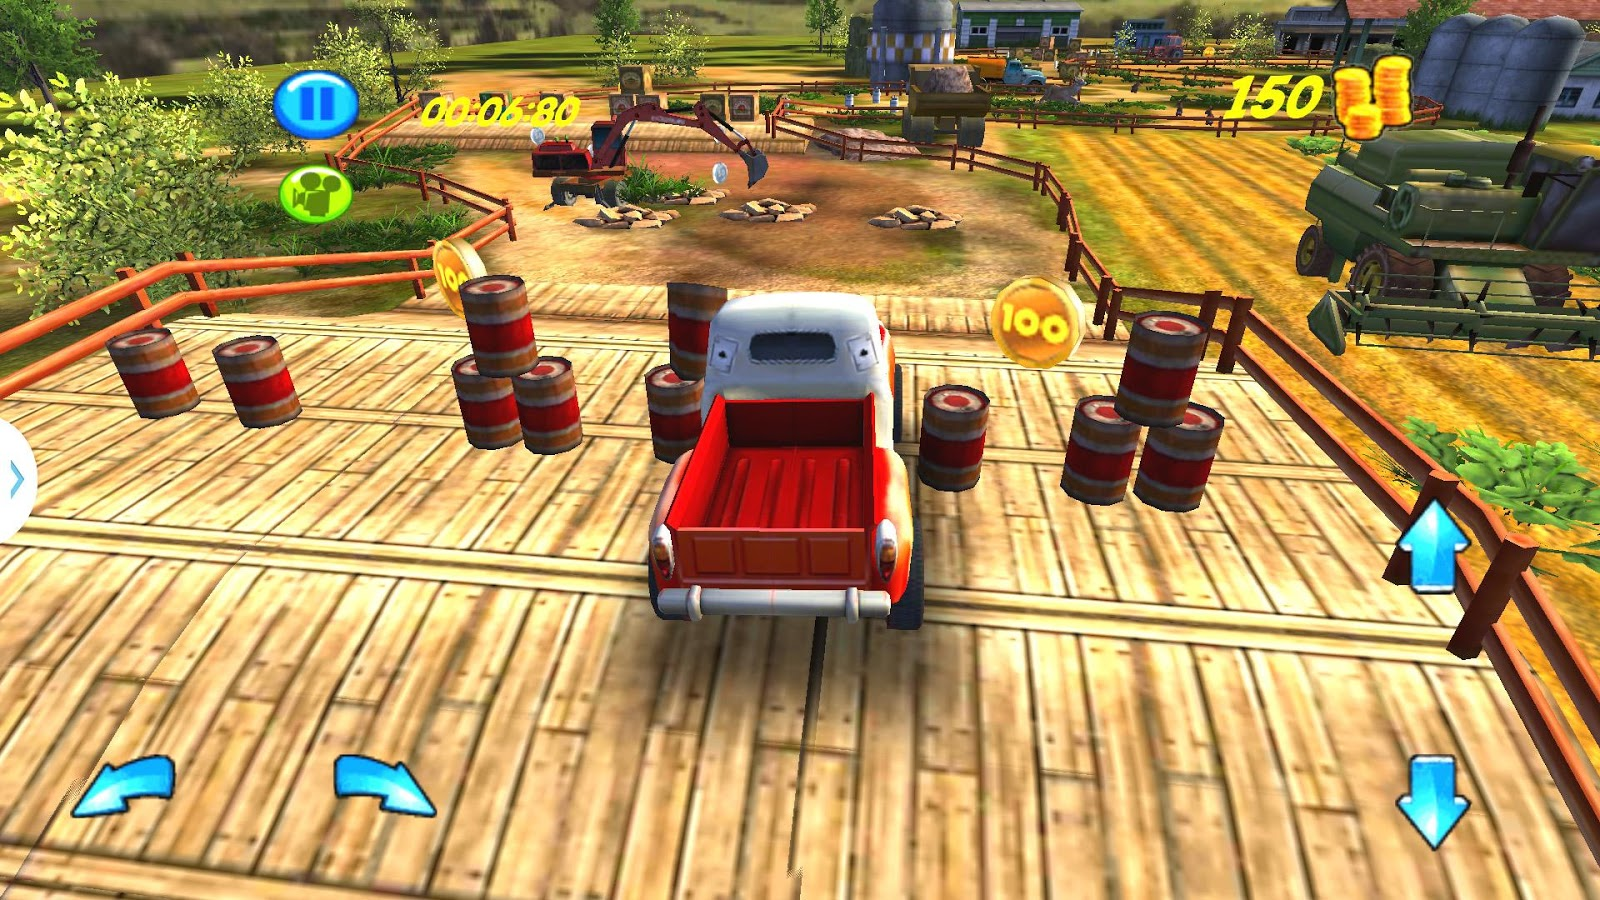 Destruction Race - On the Farm3